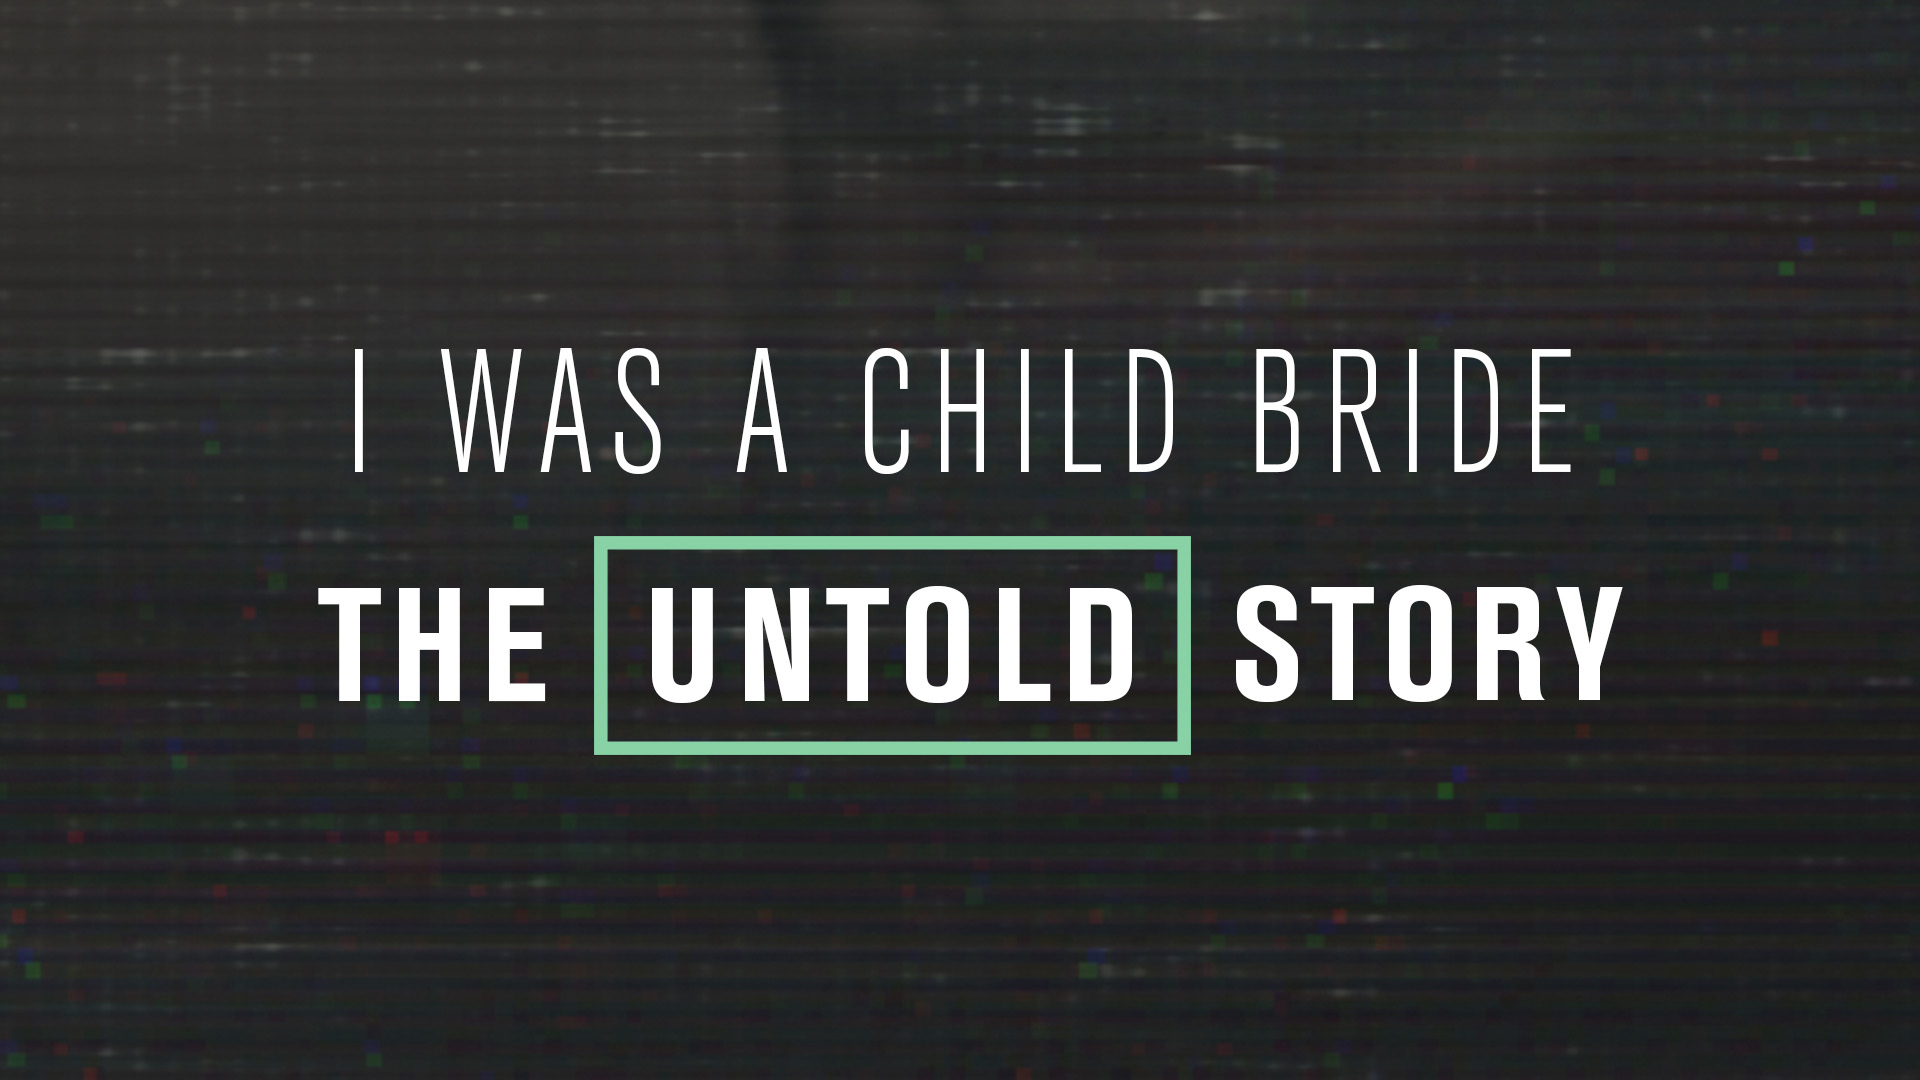 I Was a Child Bride: The Untold Story